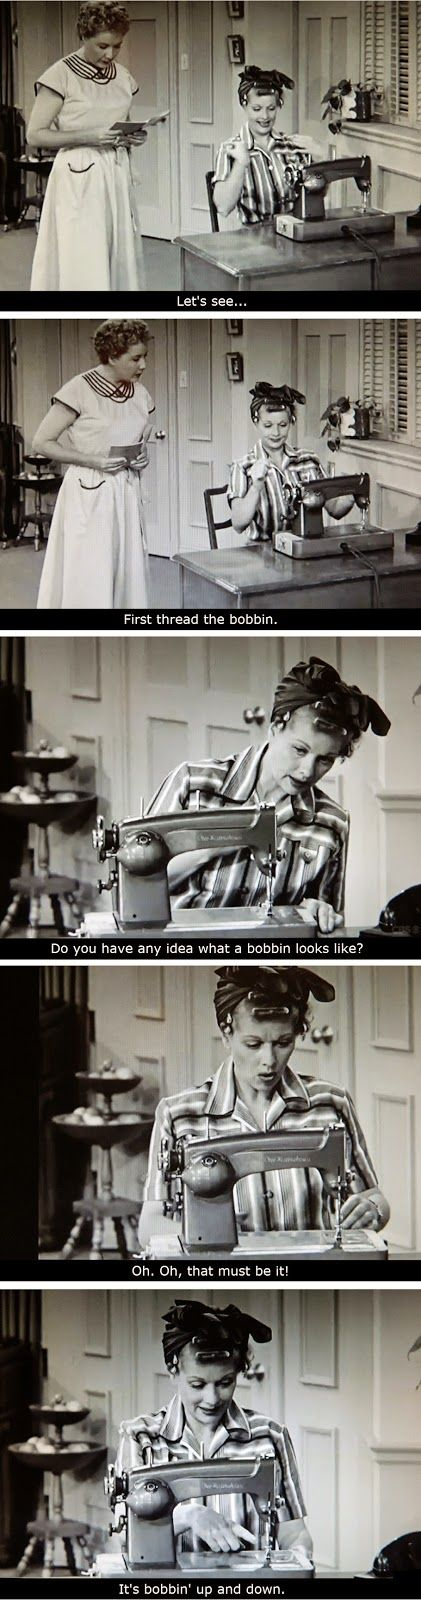 I Love Lucy: Lucy & Ethel - Lucy Learns to Sew - BuzzinBumble: Vintage Sewing & Fun